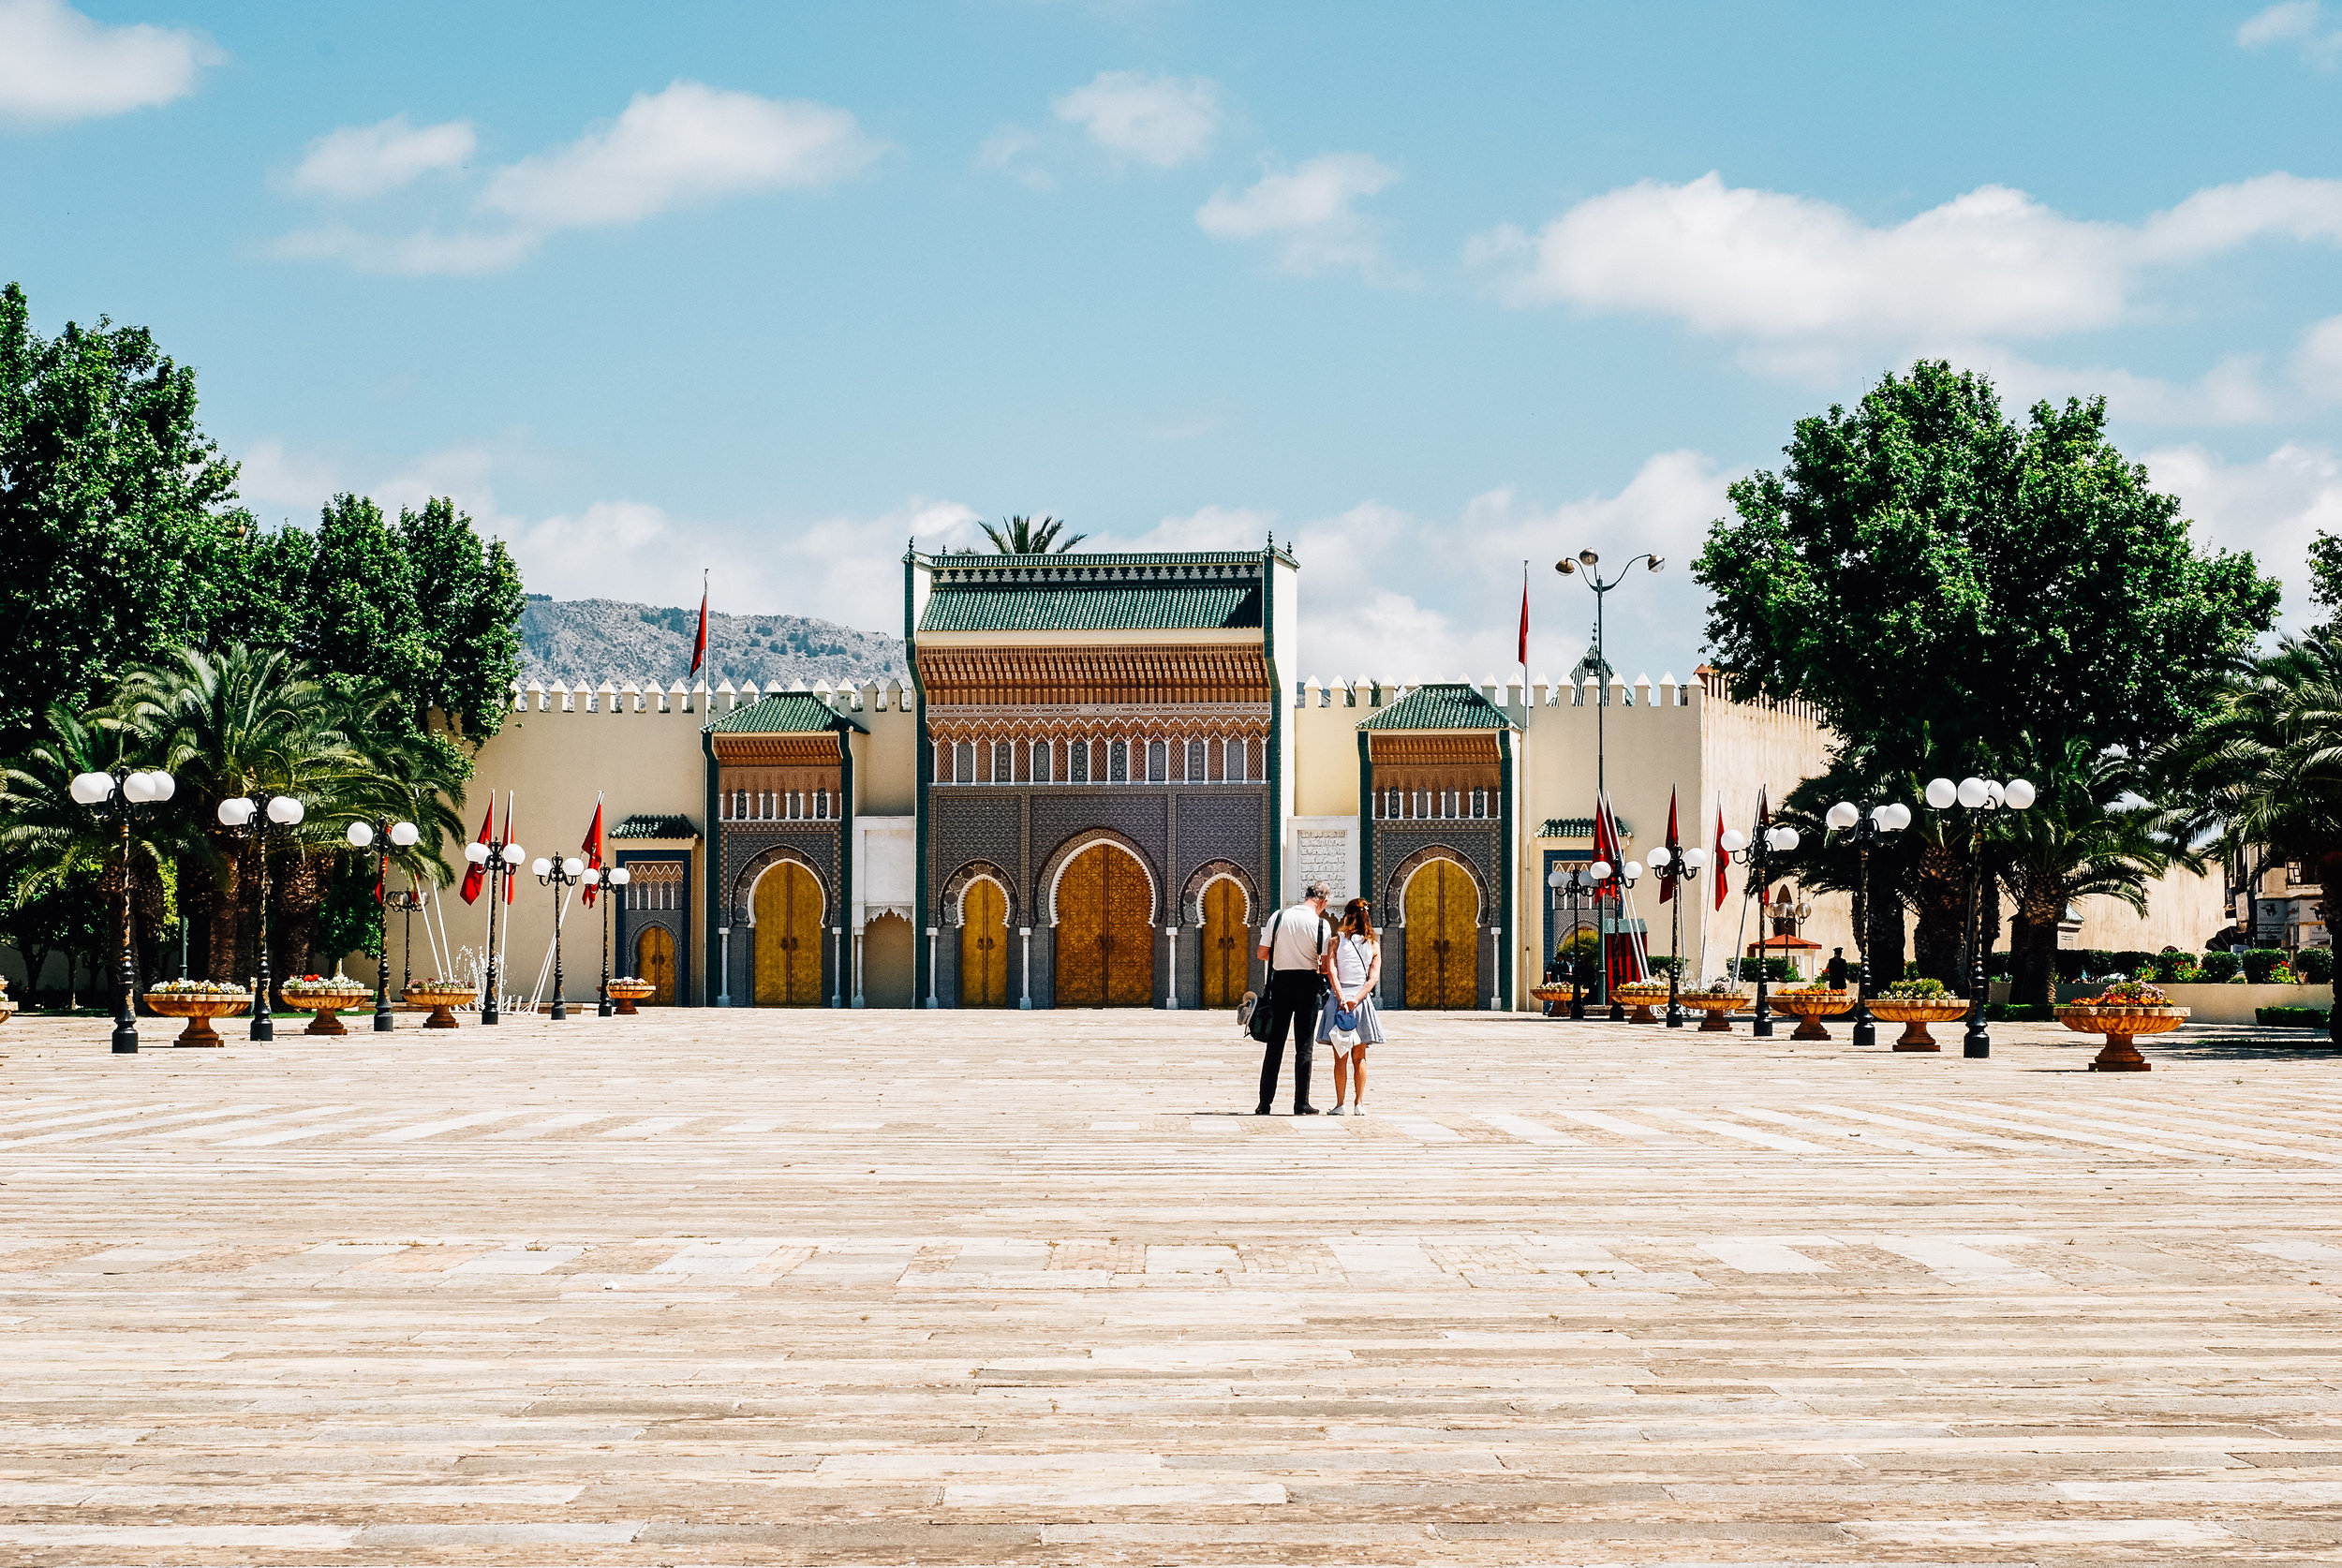 Fes Morocco Toronto Travel Photographers - Suech and Beck